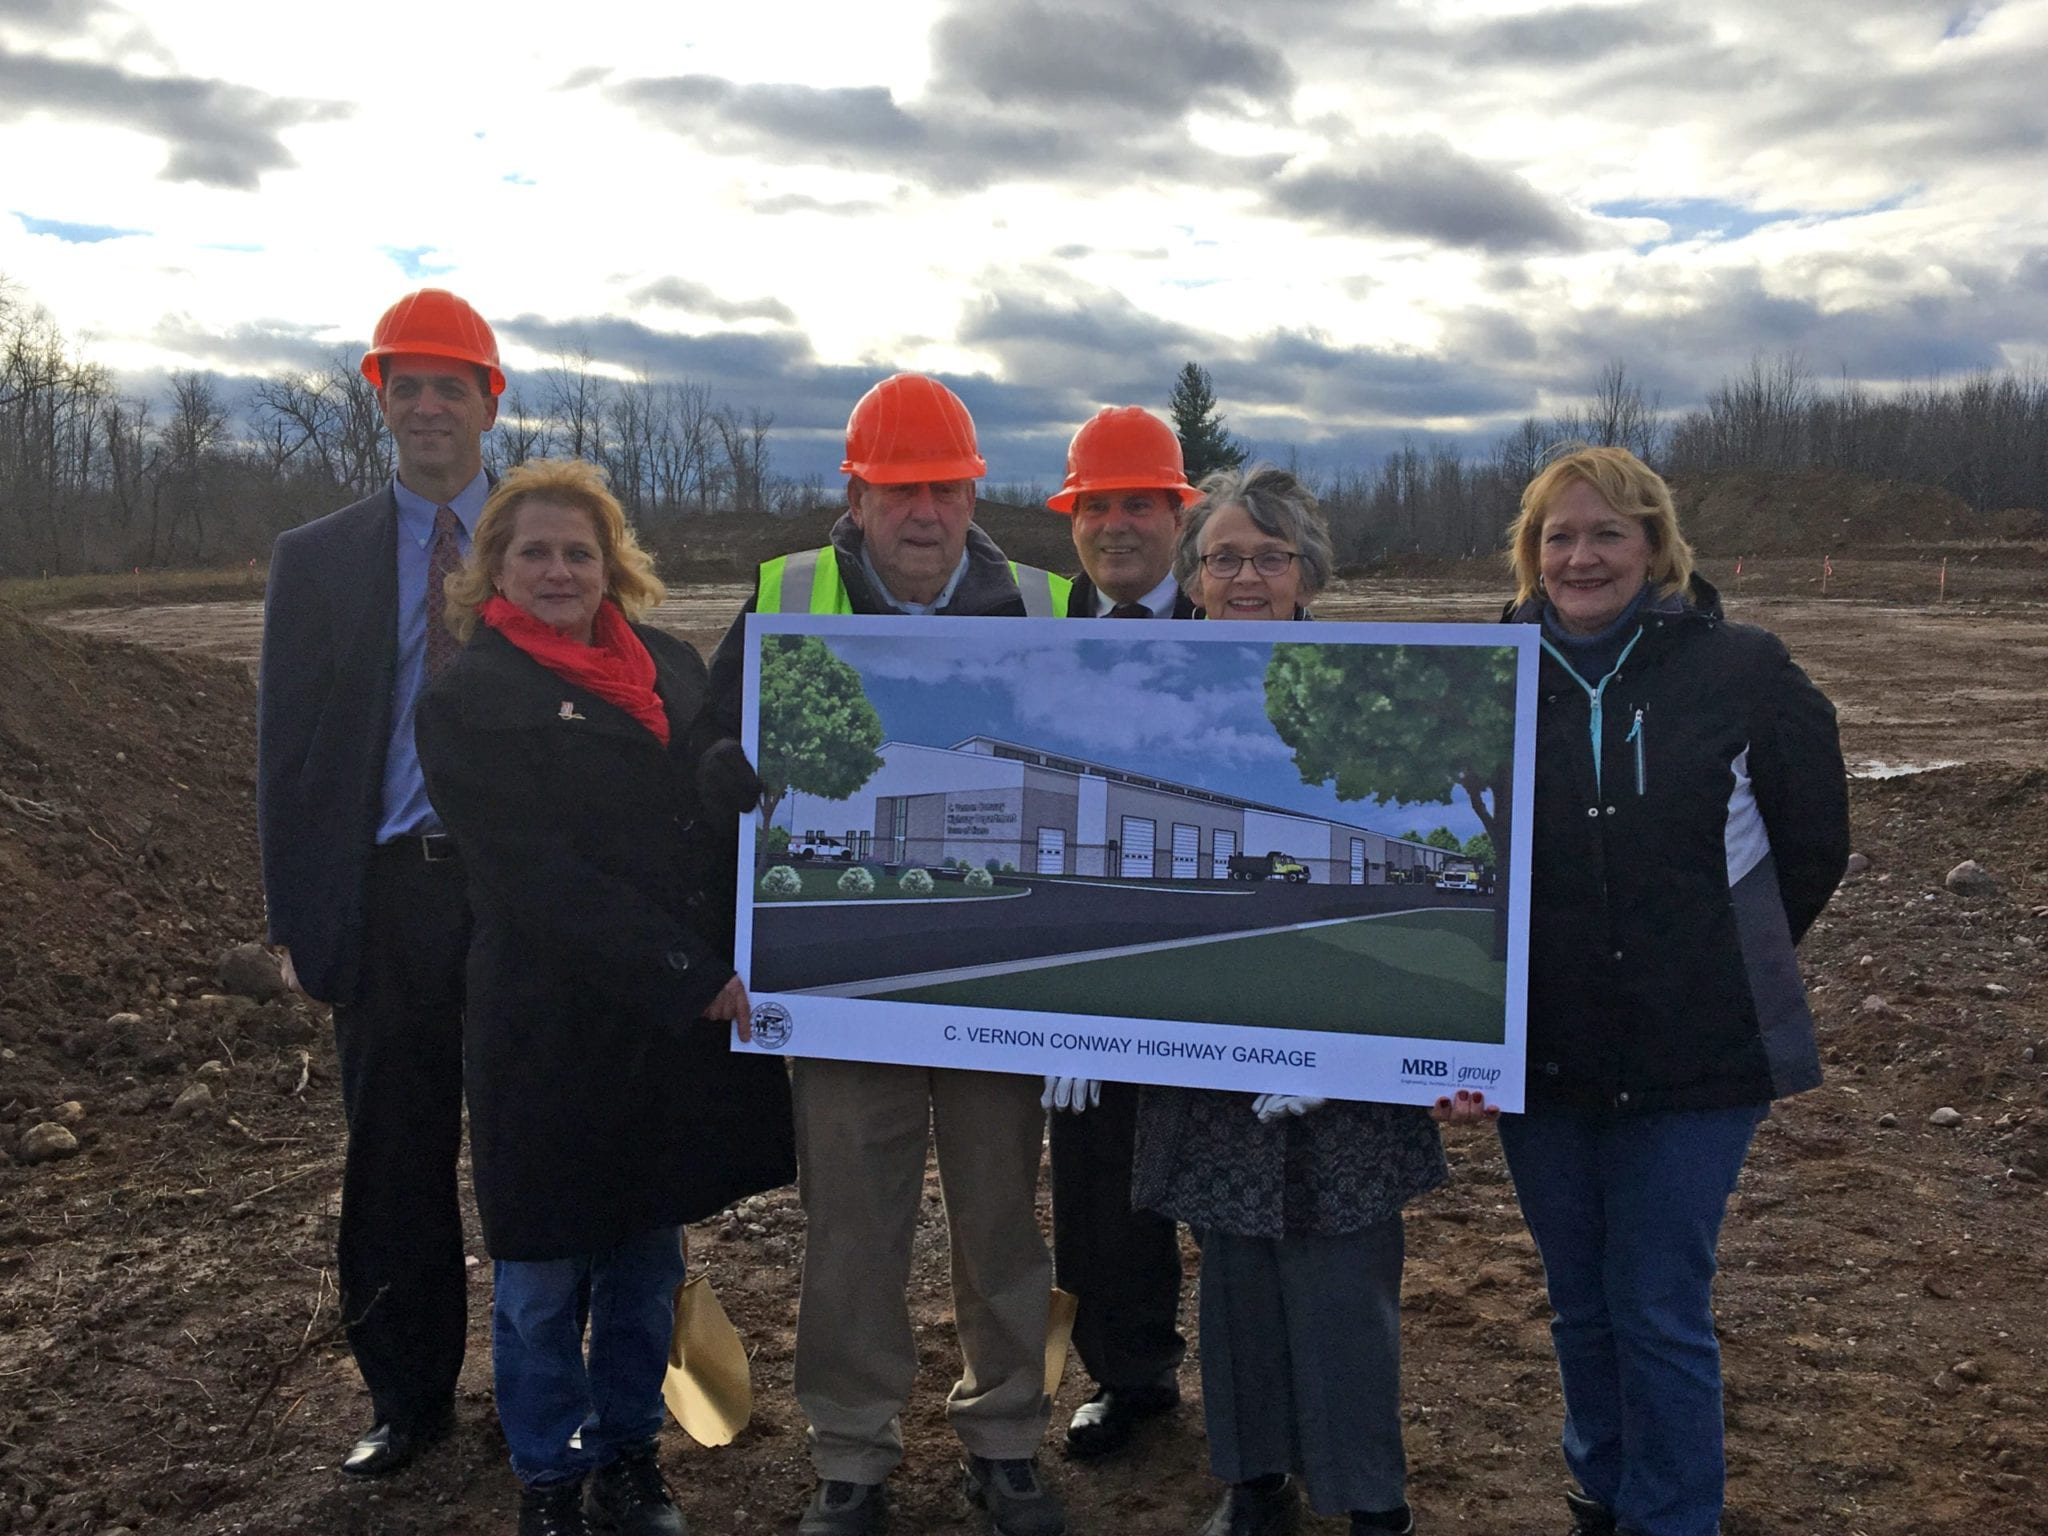 Cicero breaks ground on C. Vernon Conway Highway Department Facility